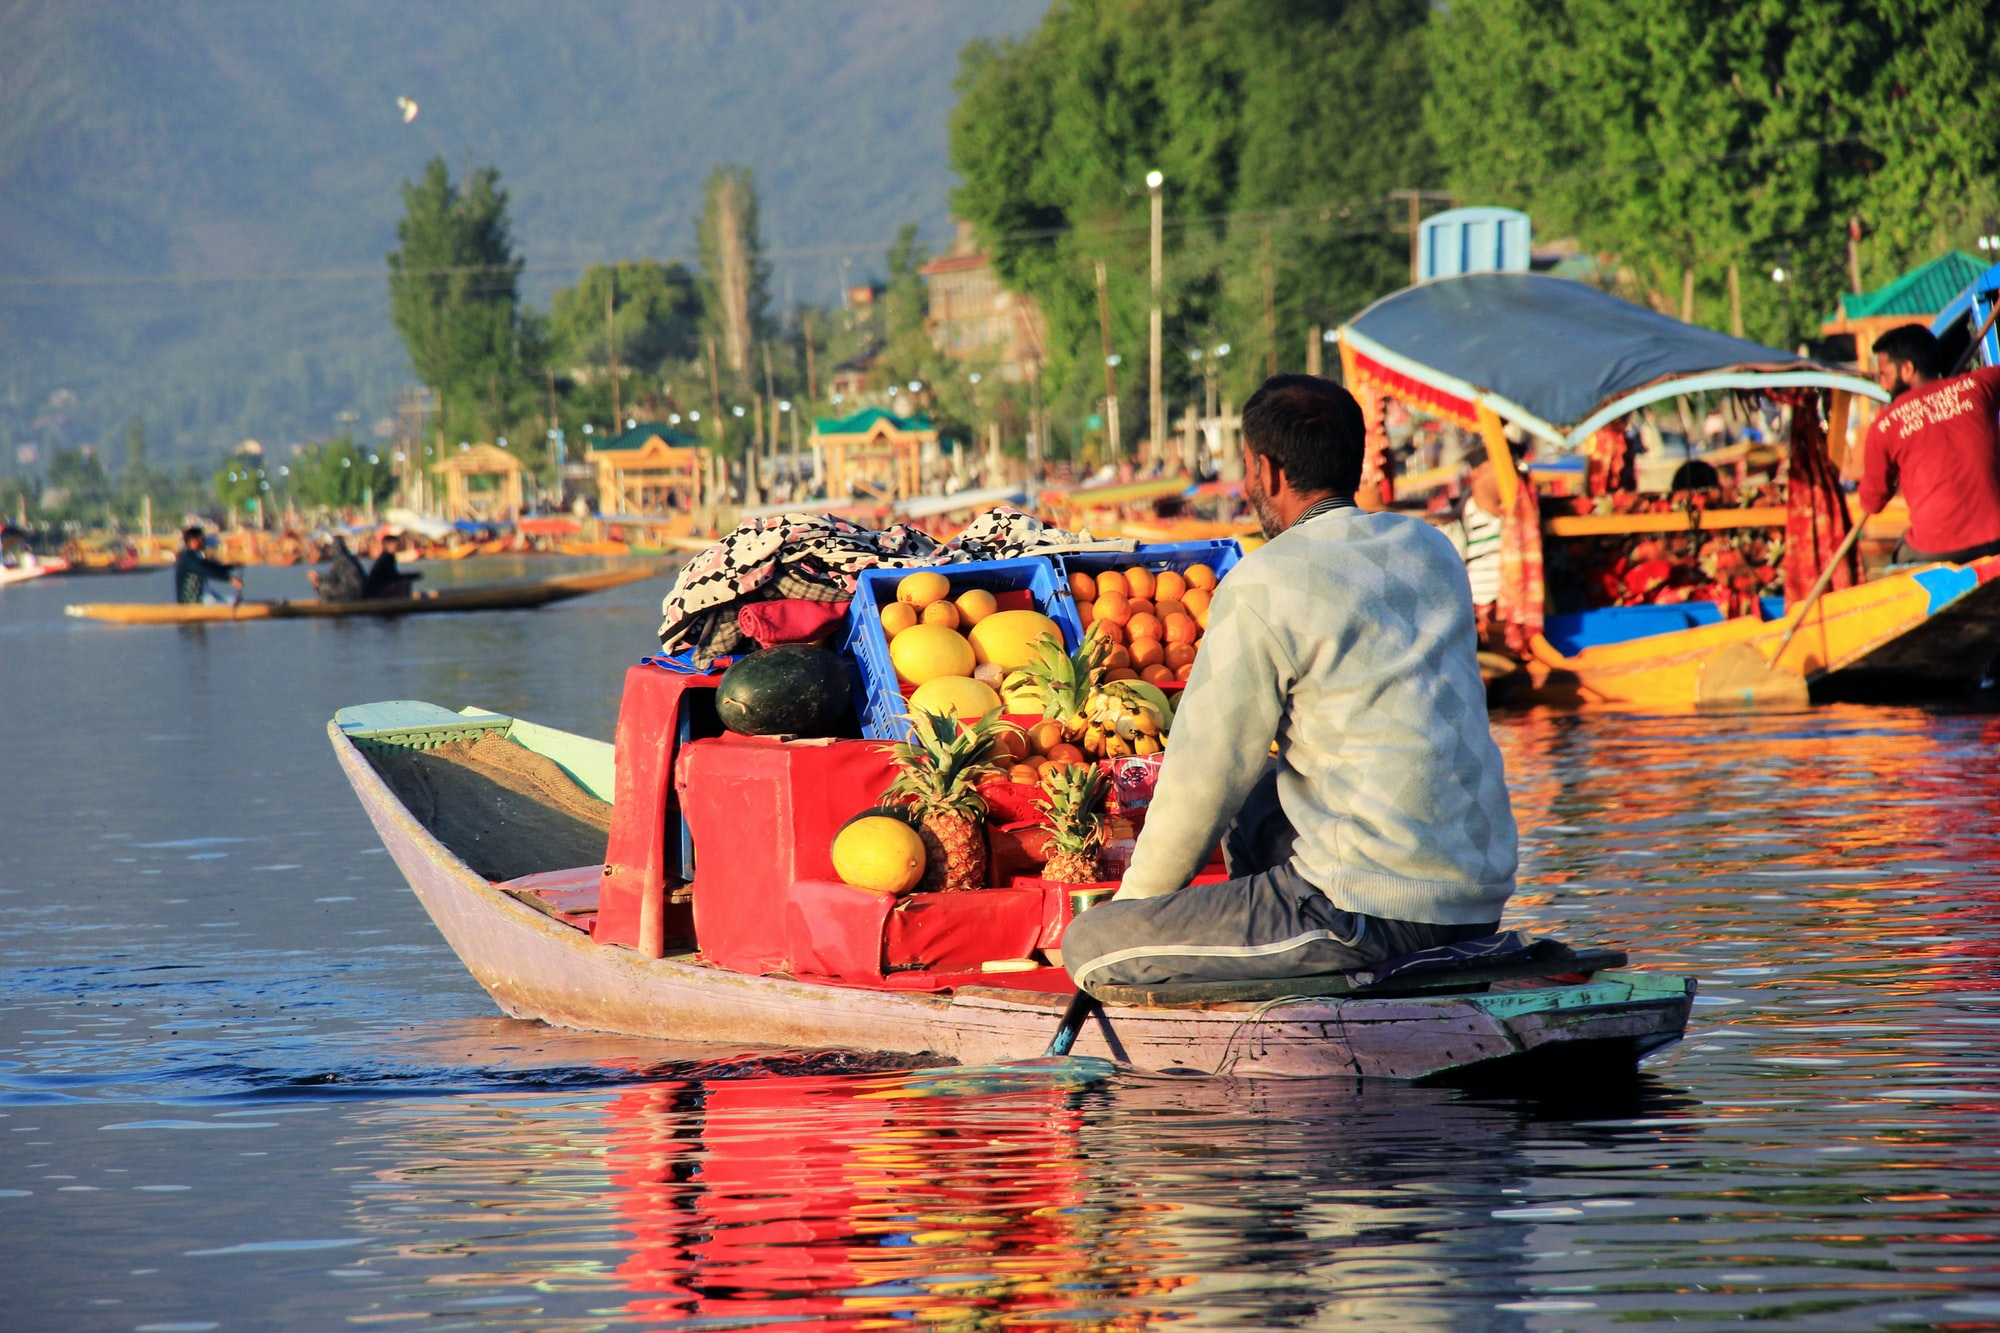 Srinagar Dal lake Floating Market. The Dal Lake is also famous for its 'floating vegetable market', the only one of its kind in India and only the second in the world, the other being the rowing shops along the backwaters of the Mekong Delta in Vietnam. Please follow me on Instagram @amits_pictography